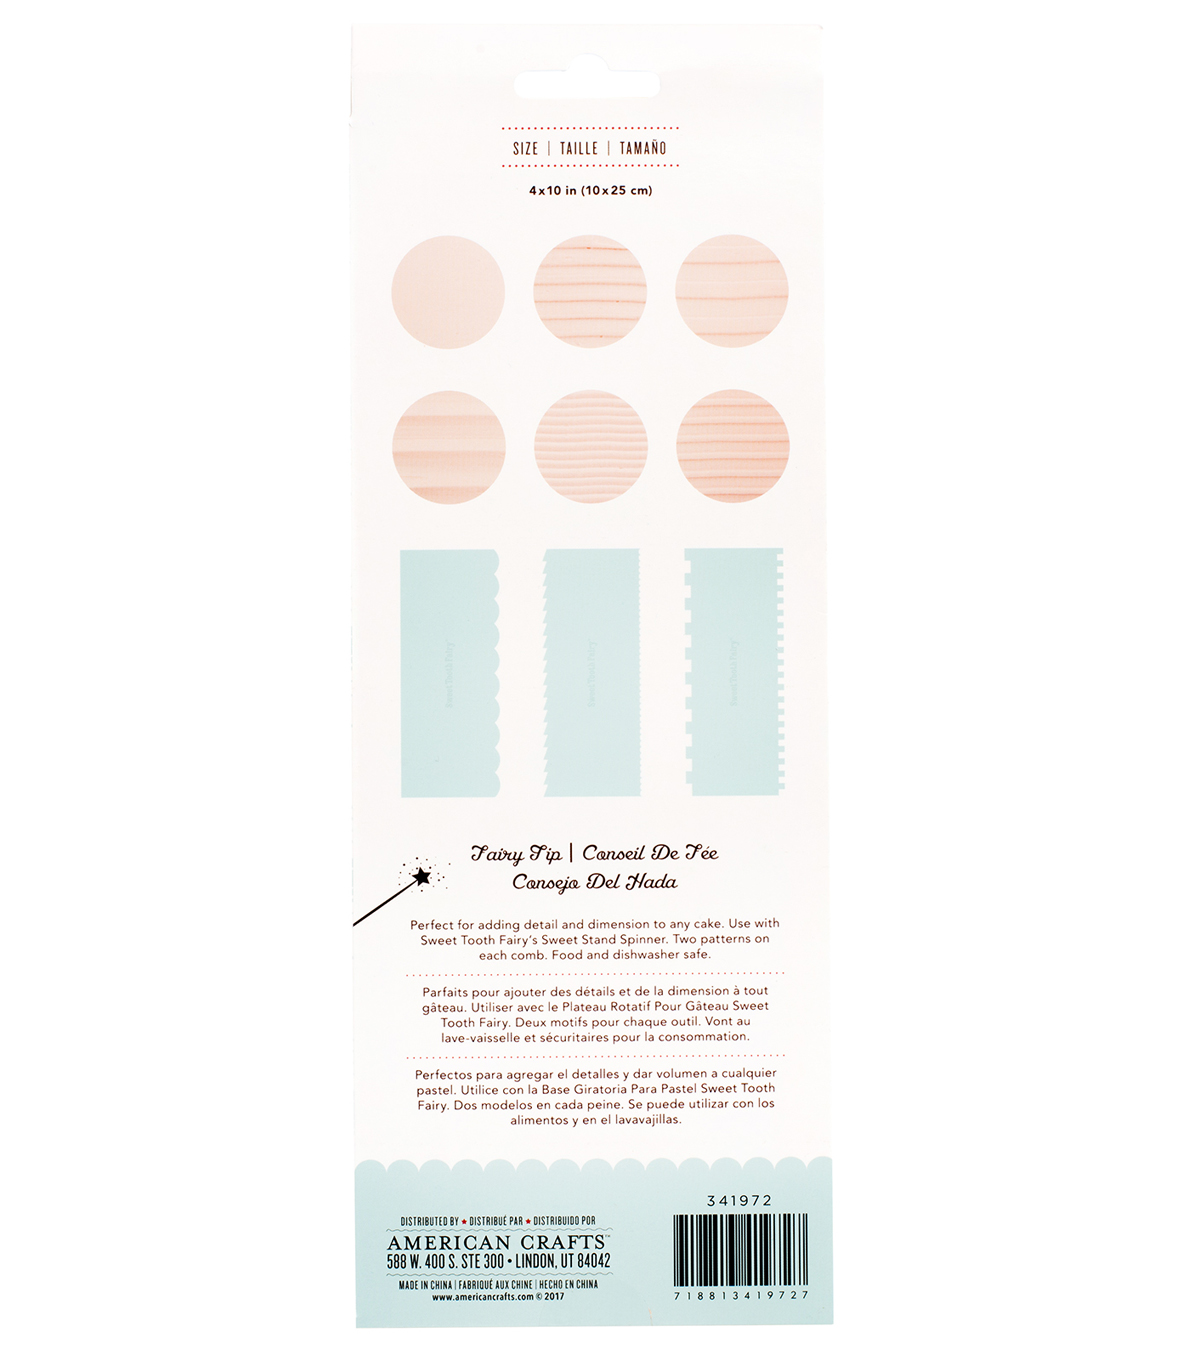 The Sweet Tooth Fairy 3 pk Double-sided Cake Combs